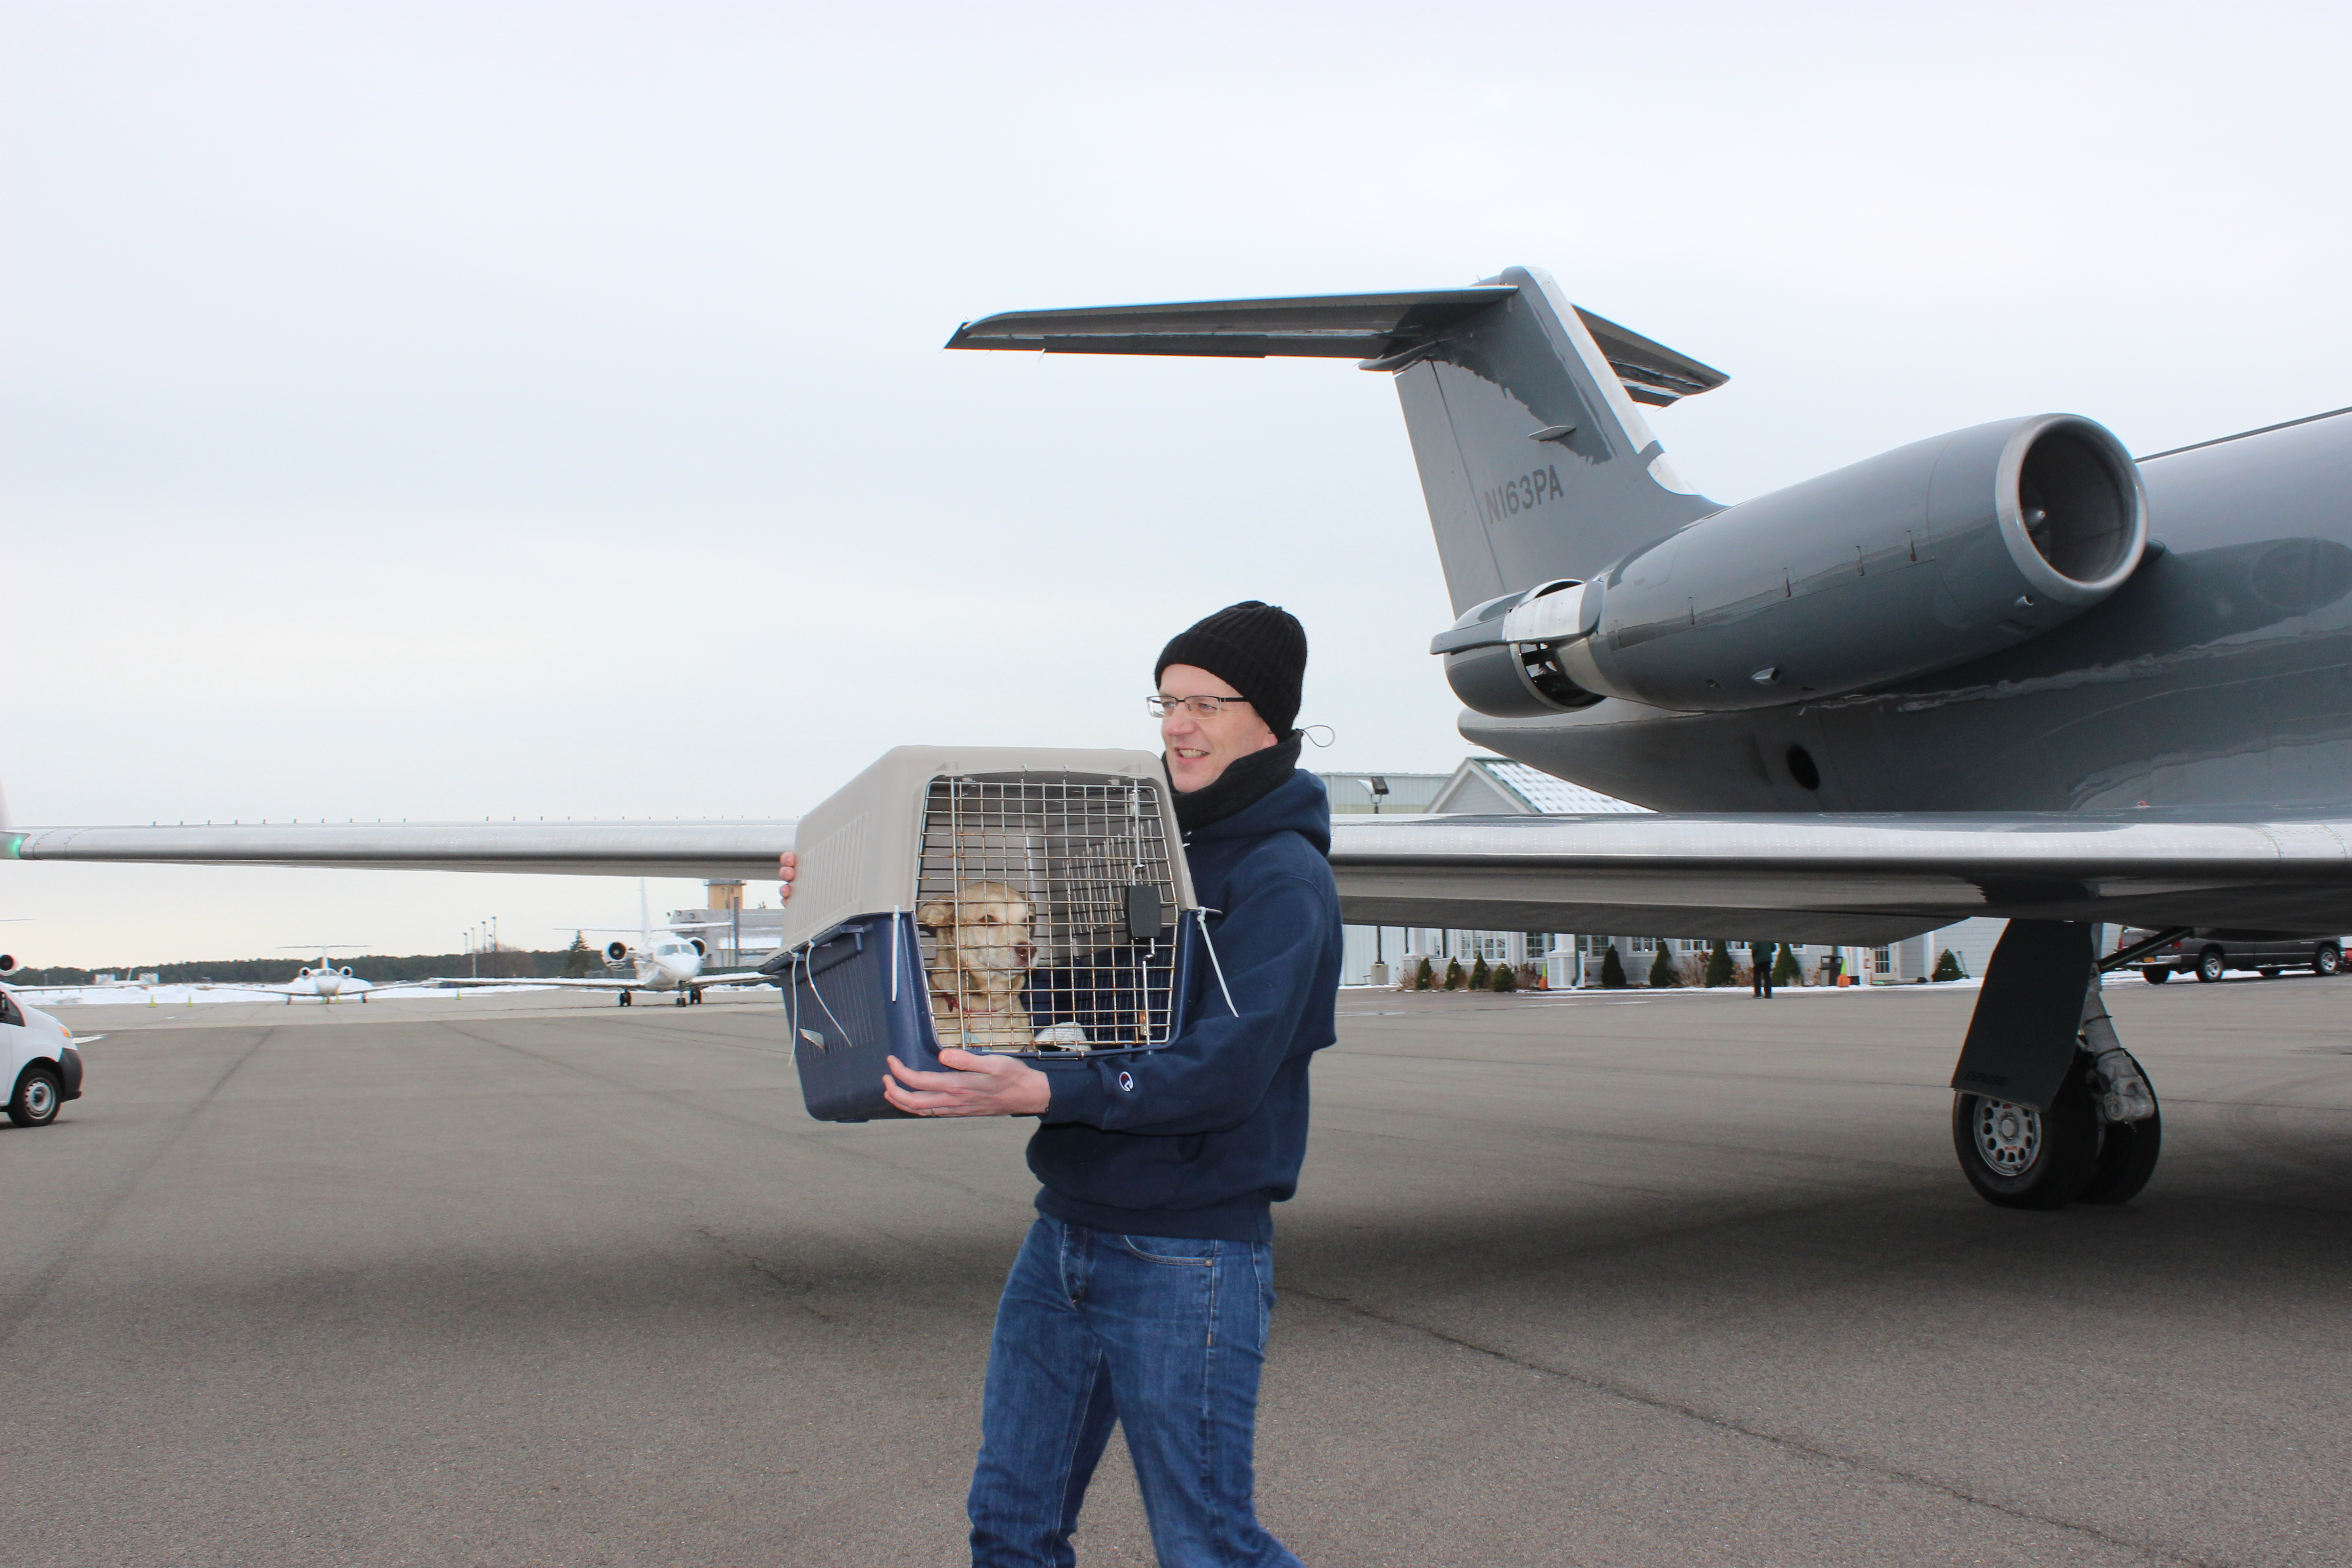 From airplane to ARF transport van